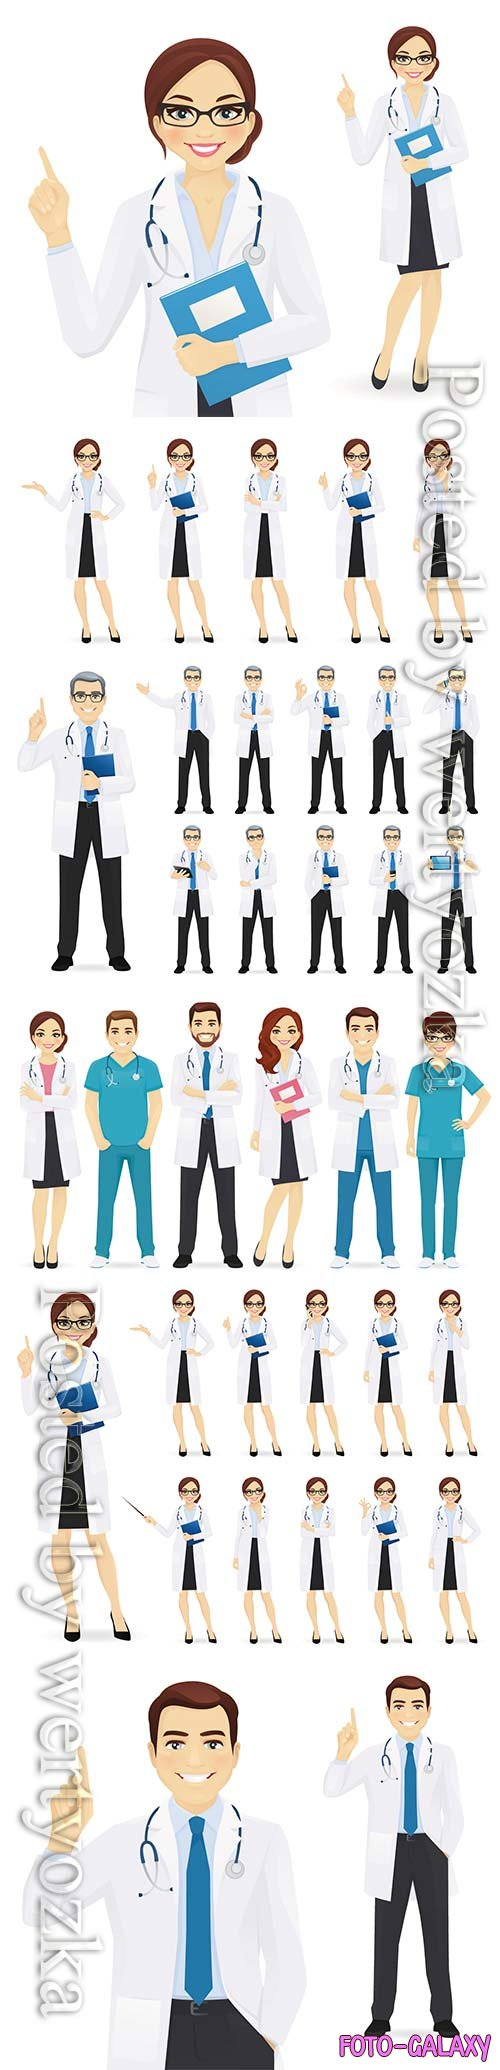 Doctors team in different poses set vector illustration